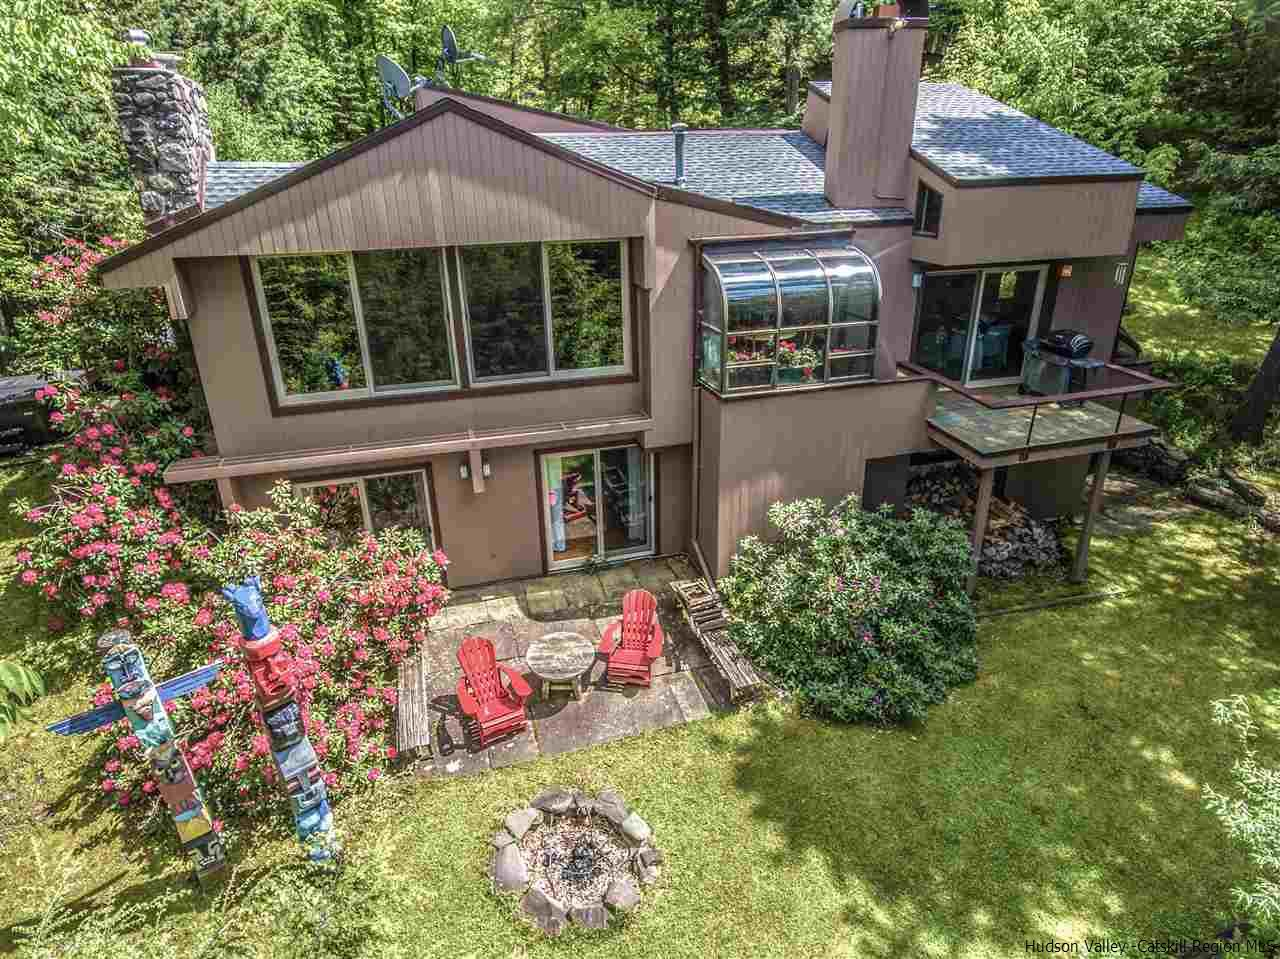 Single Family Home for Sale at 360 LITTLE TIMBER Road 360 LITTLE TIMBER Road Jewett, New York 12444 United States